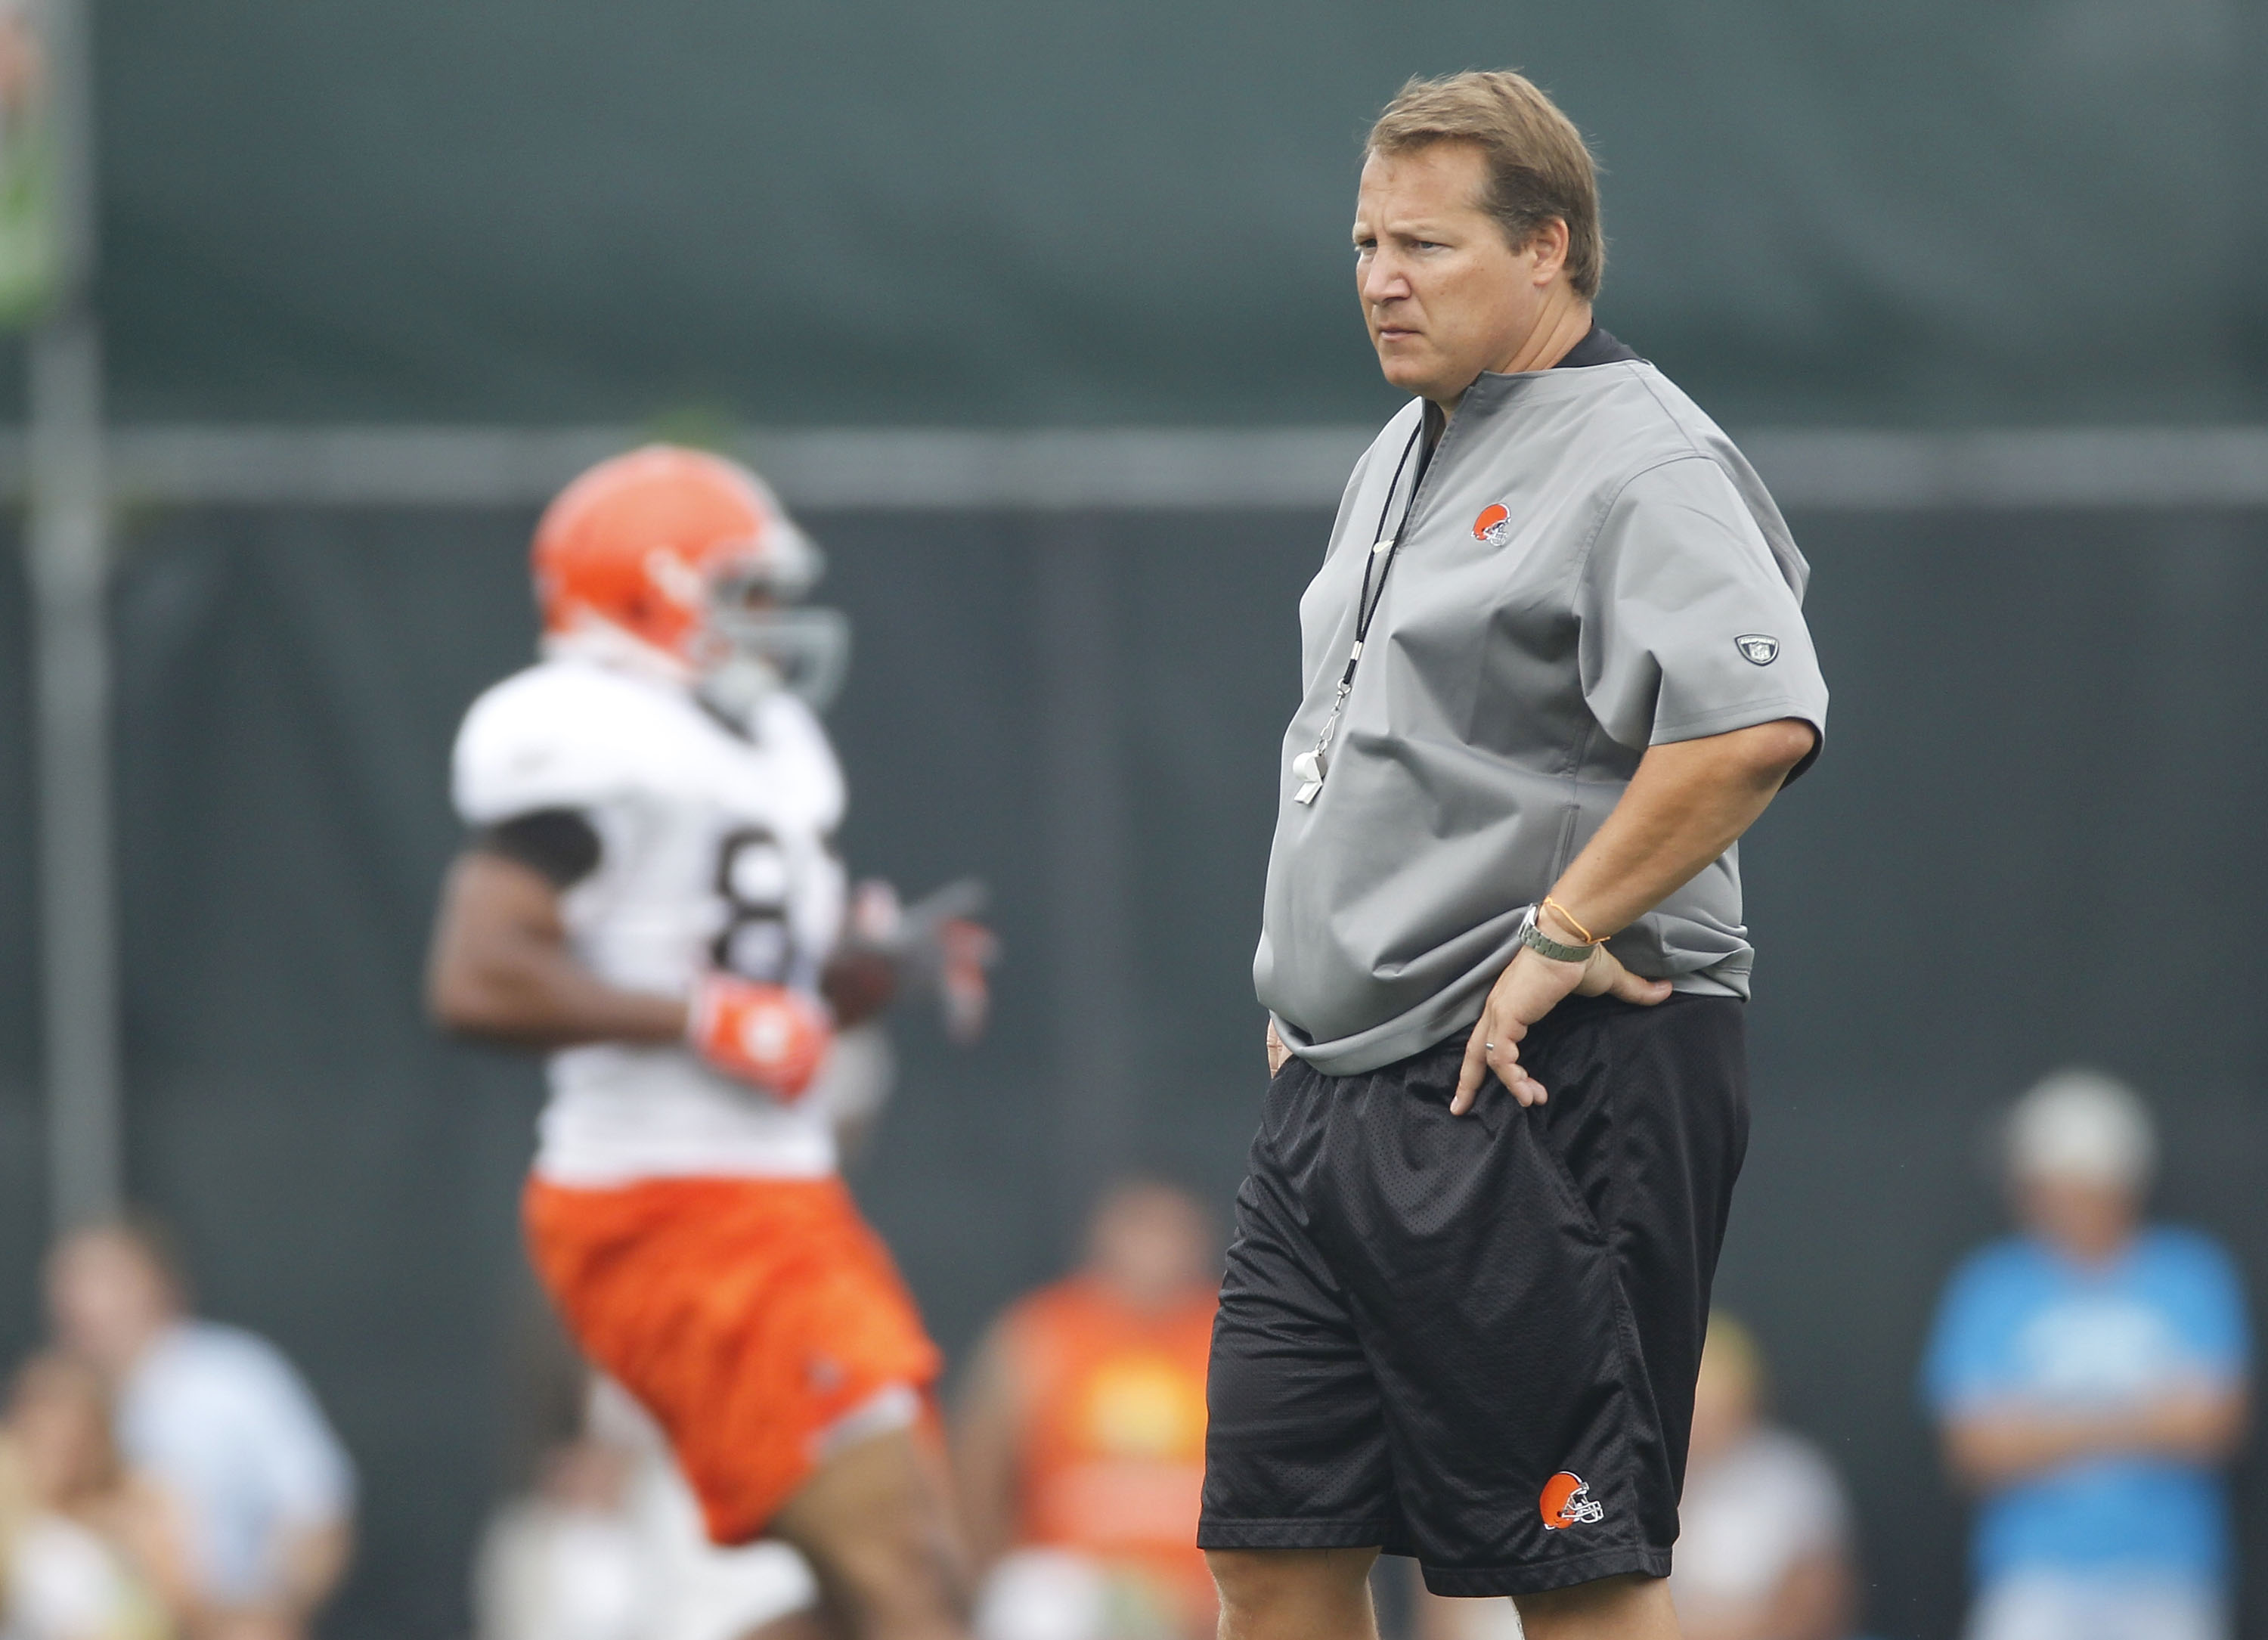 BEREA, OH - AUGUST 04:  Head coach Eric Mangini of the Cleveland Browns looks on during training camp at the Cleveland Browns Training and Administrative Complex on August 4, 2010 in Berea, Ohio.  (Photo by Gregory Shamus/Getty Images)